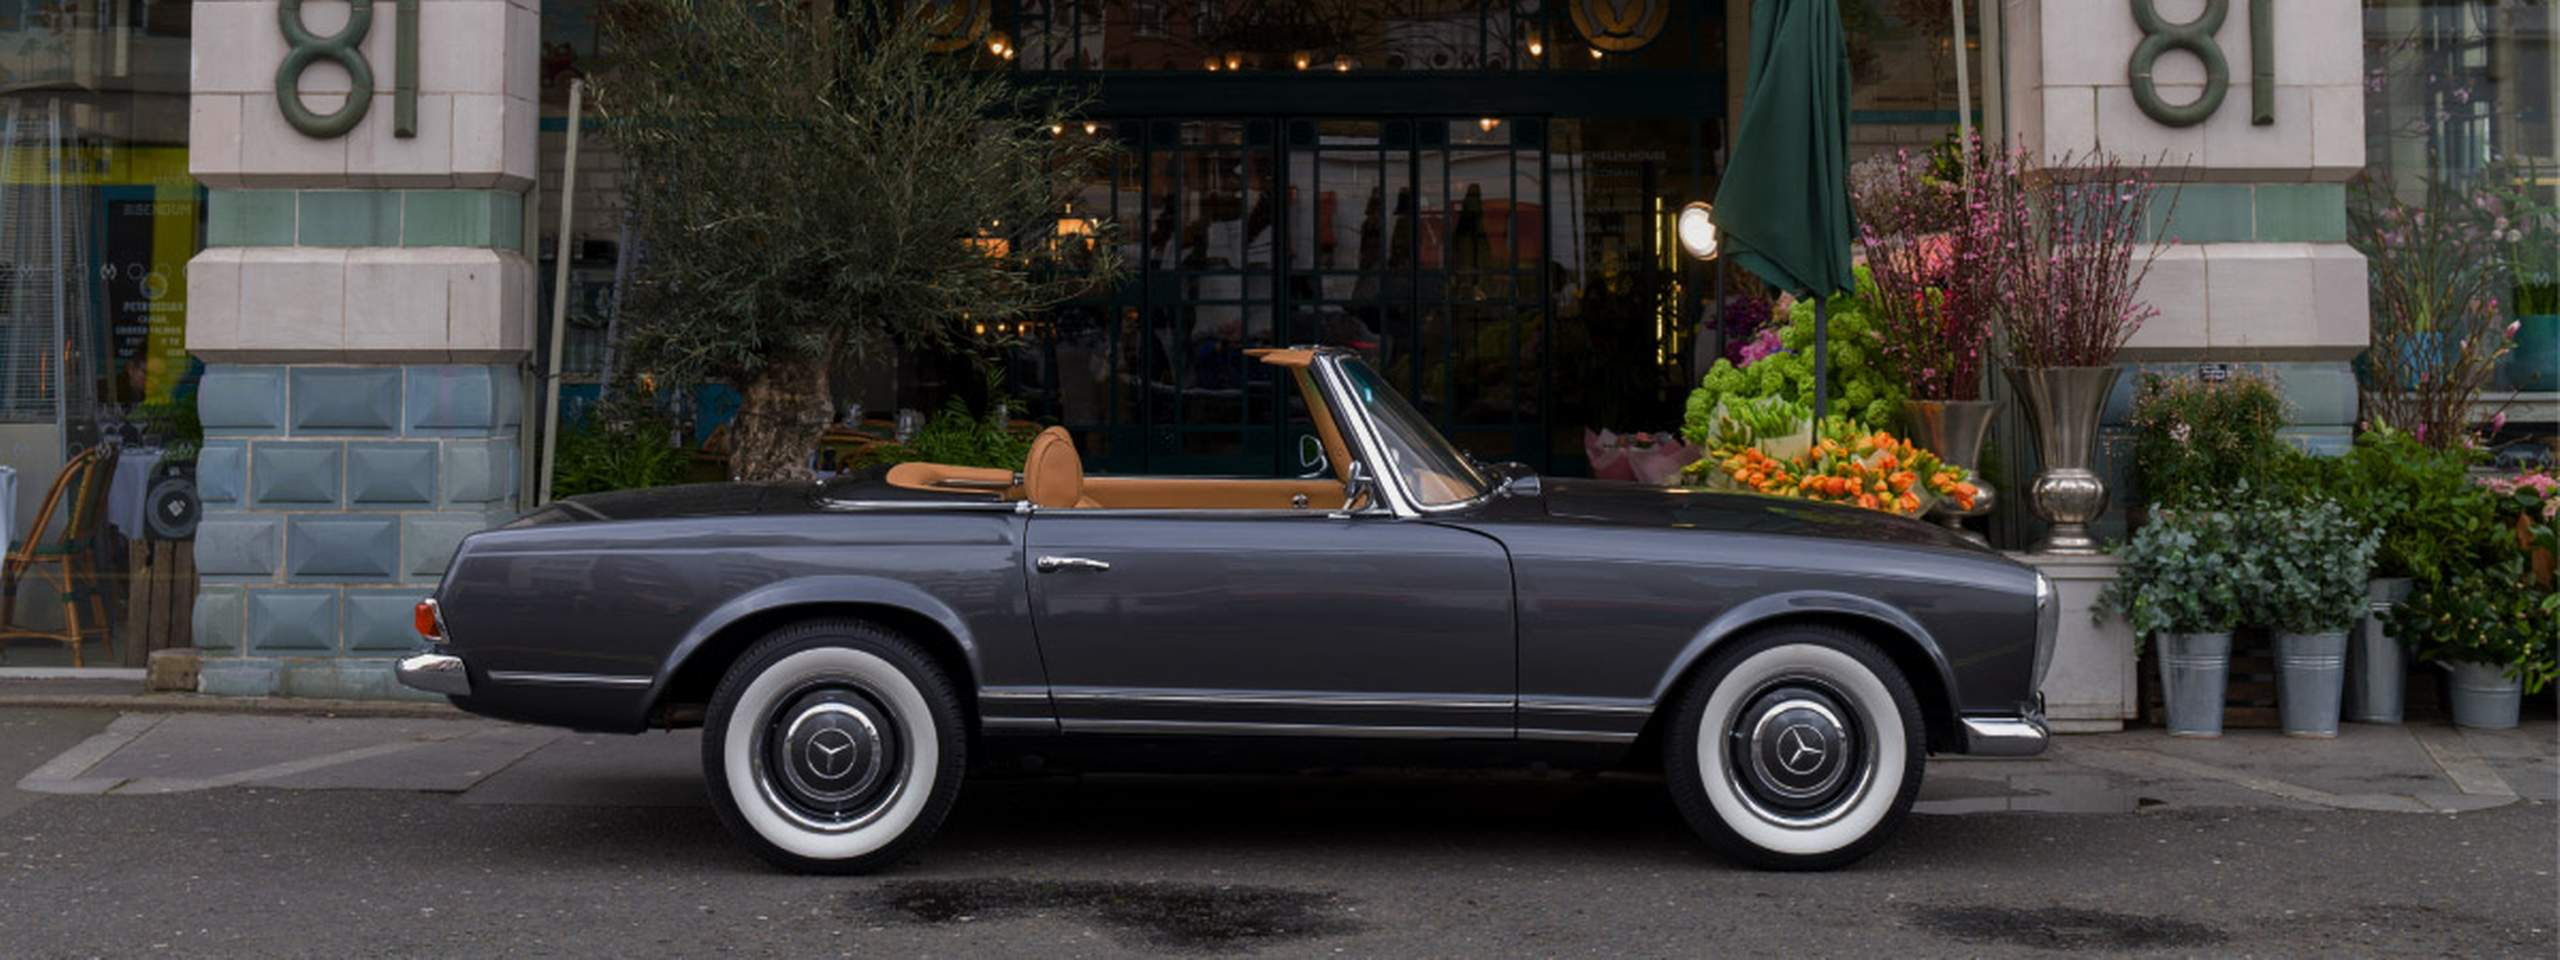 "A photo of a classic car Mercedes-Benz ""Pagoda"" turned electric"